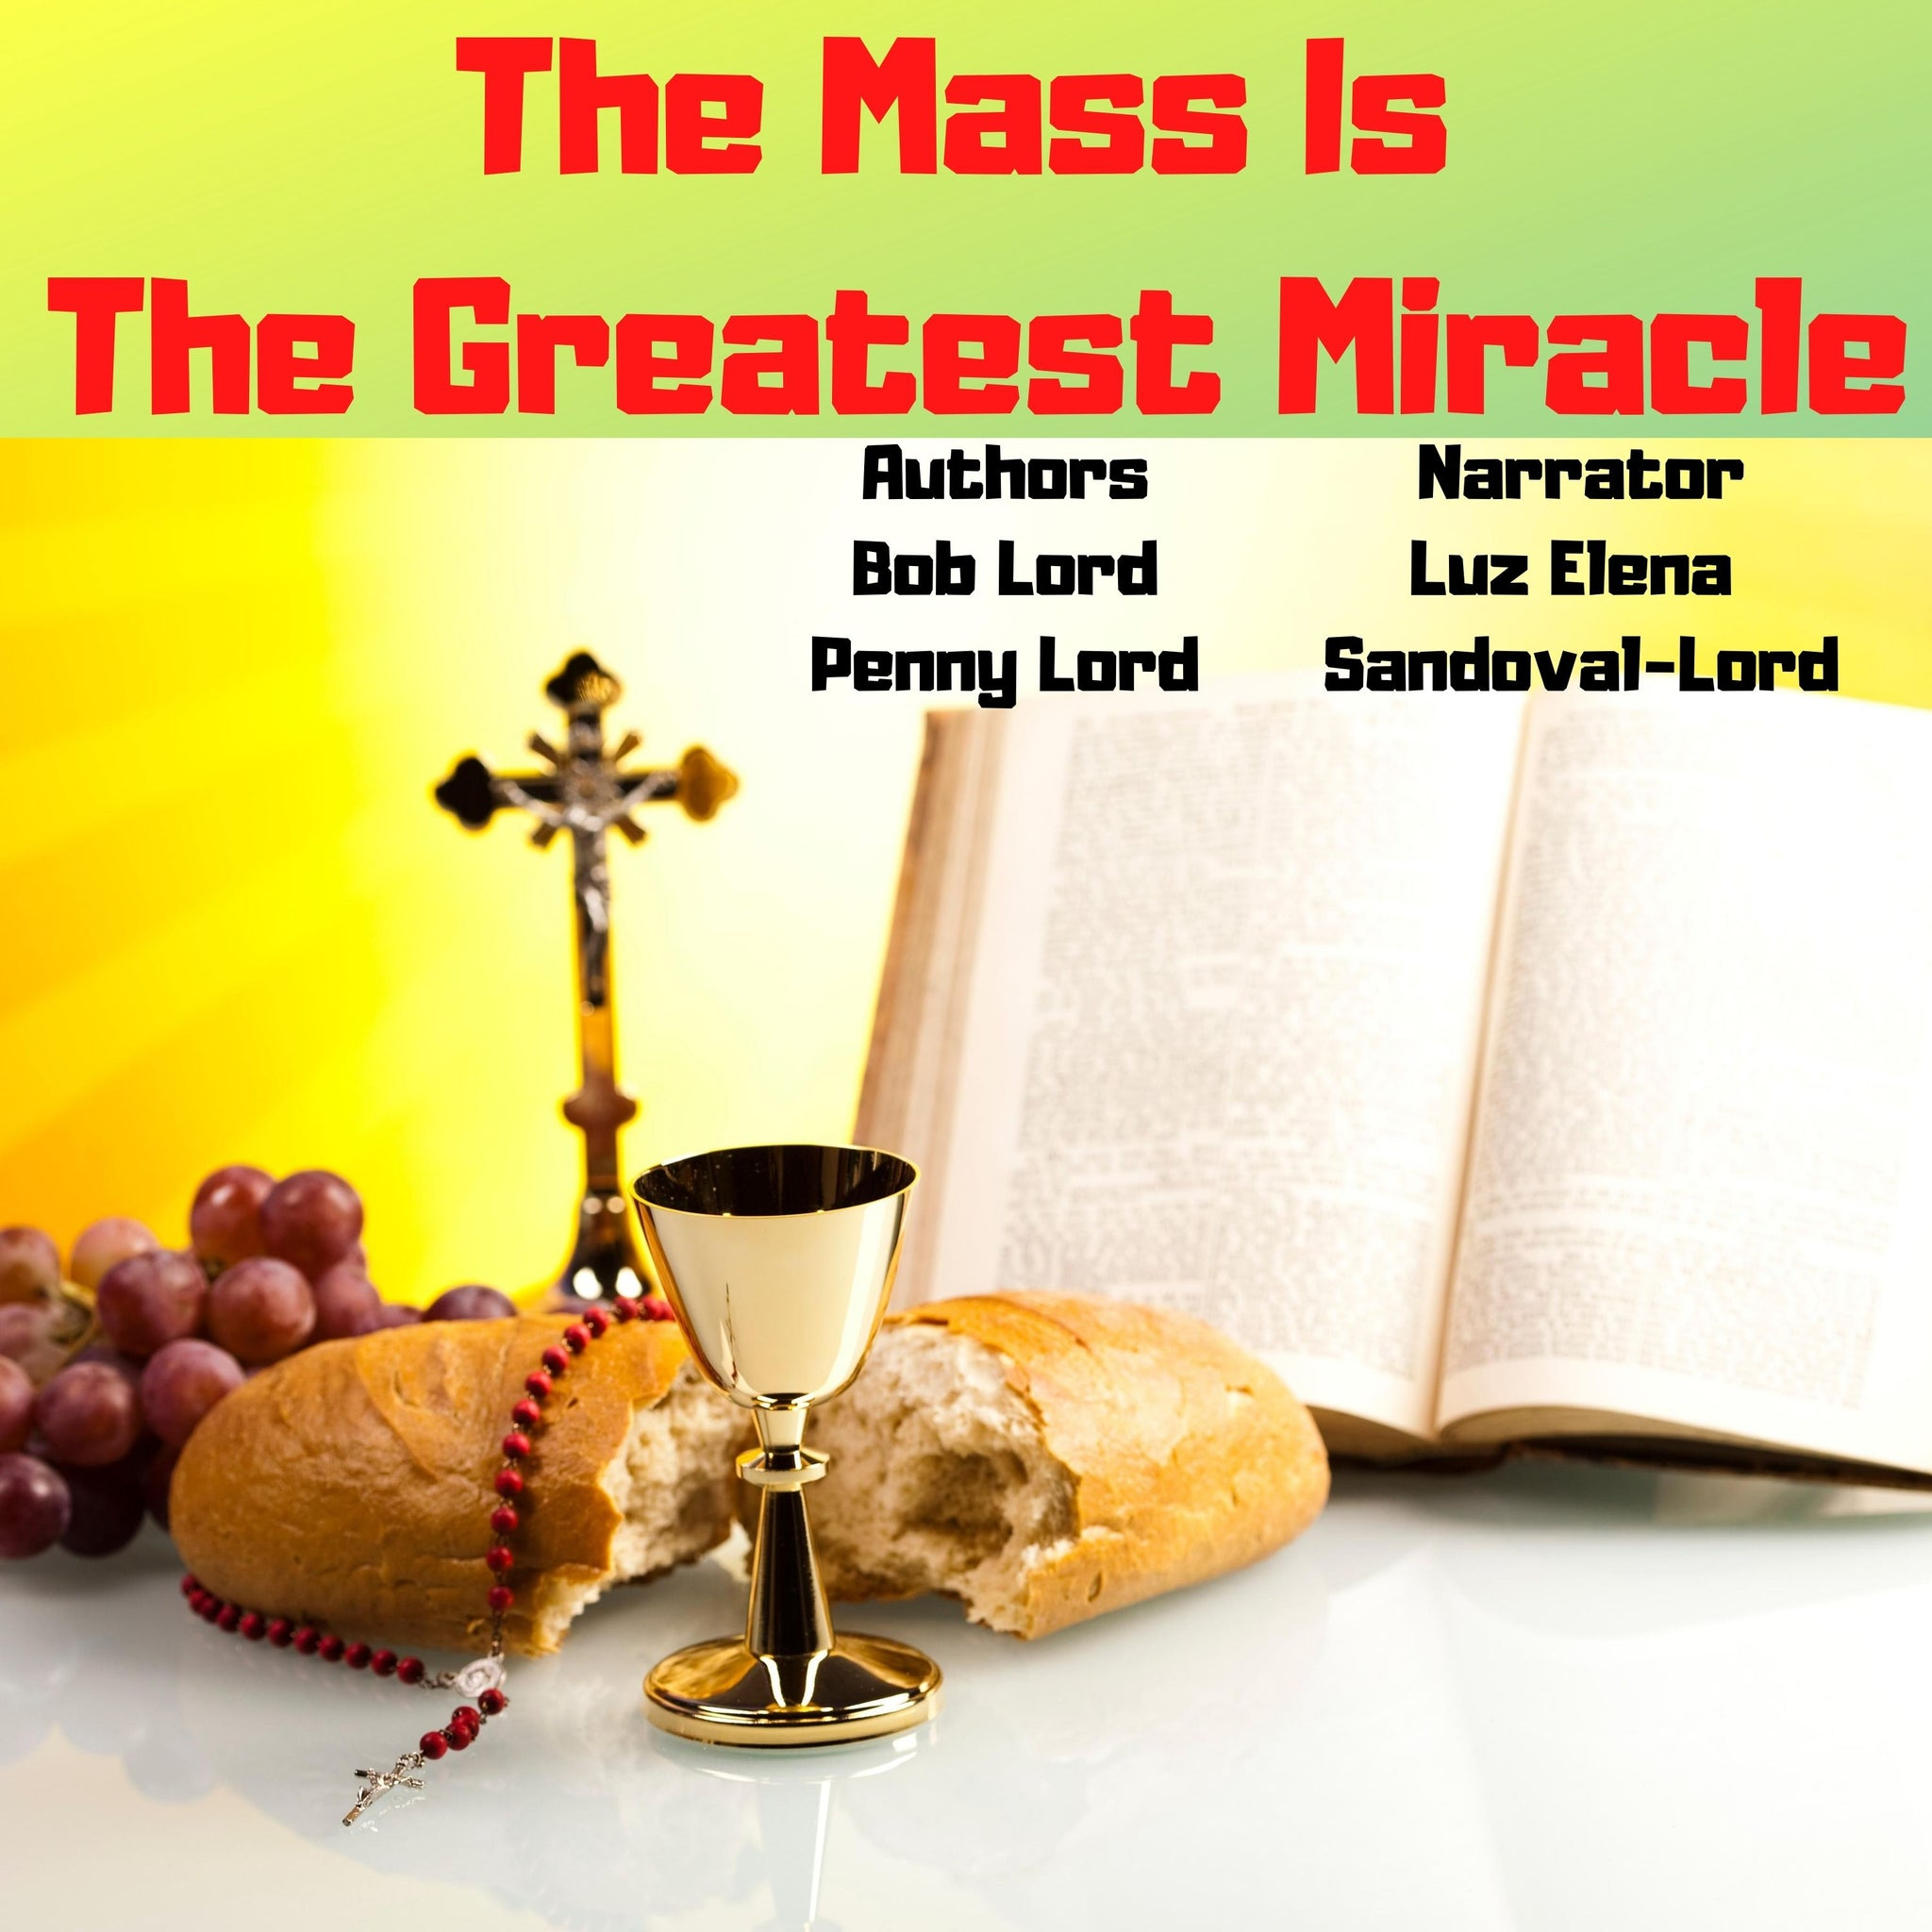 The Mass is the Greatest Miracle Audiobook Audiobook Bob and Penny Lord Ministry